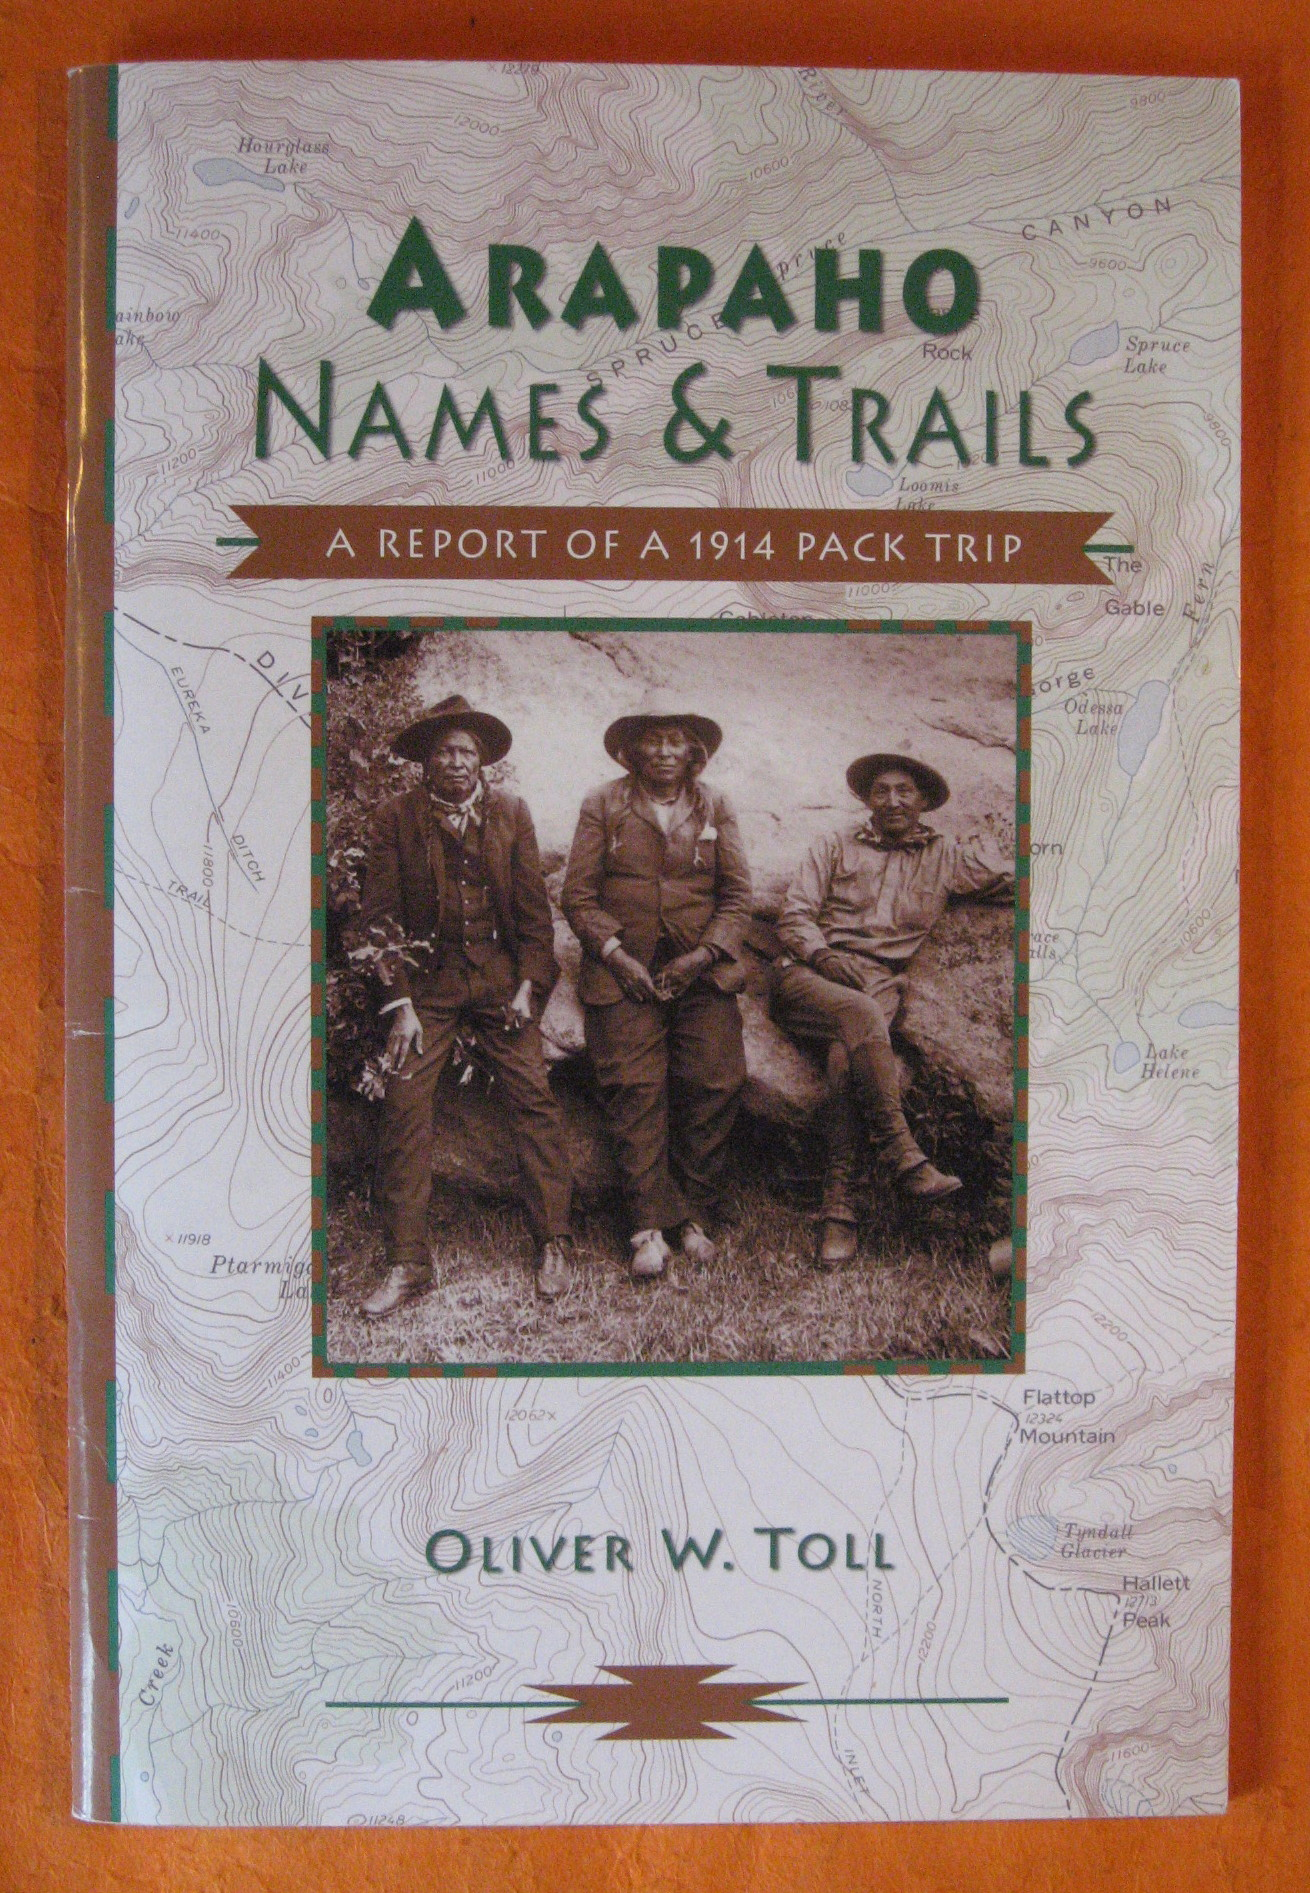 Arapaho Names & Trails. A Report of a 1914 Pack Trip, Toll, Oliver W.